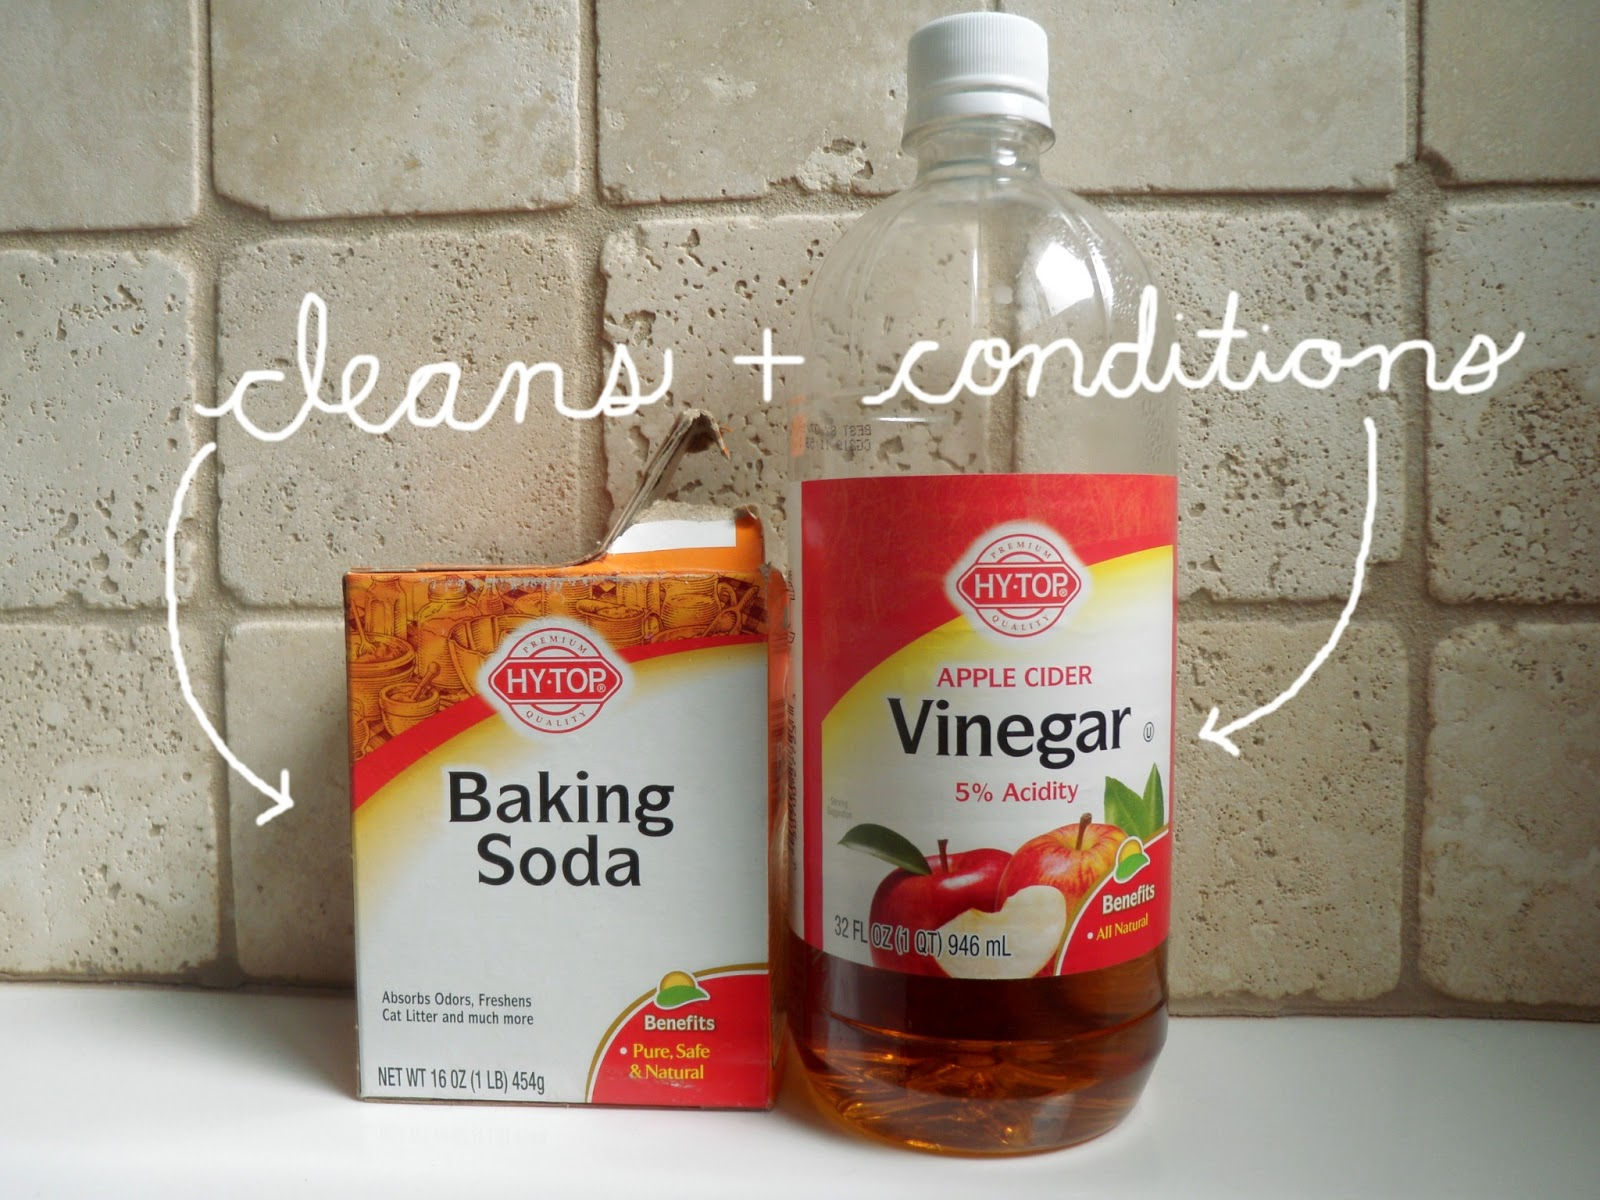 Baking soda is a very versatile staple product. In addition cleaning, people use baking soda in baking and to put out grease fires. Also, when mixed with water, it settles an upset stomach.